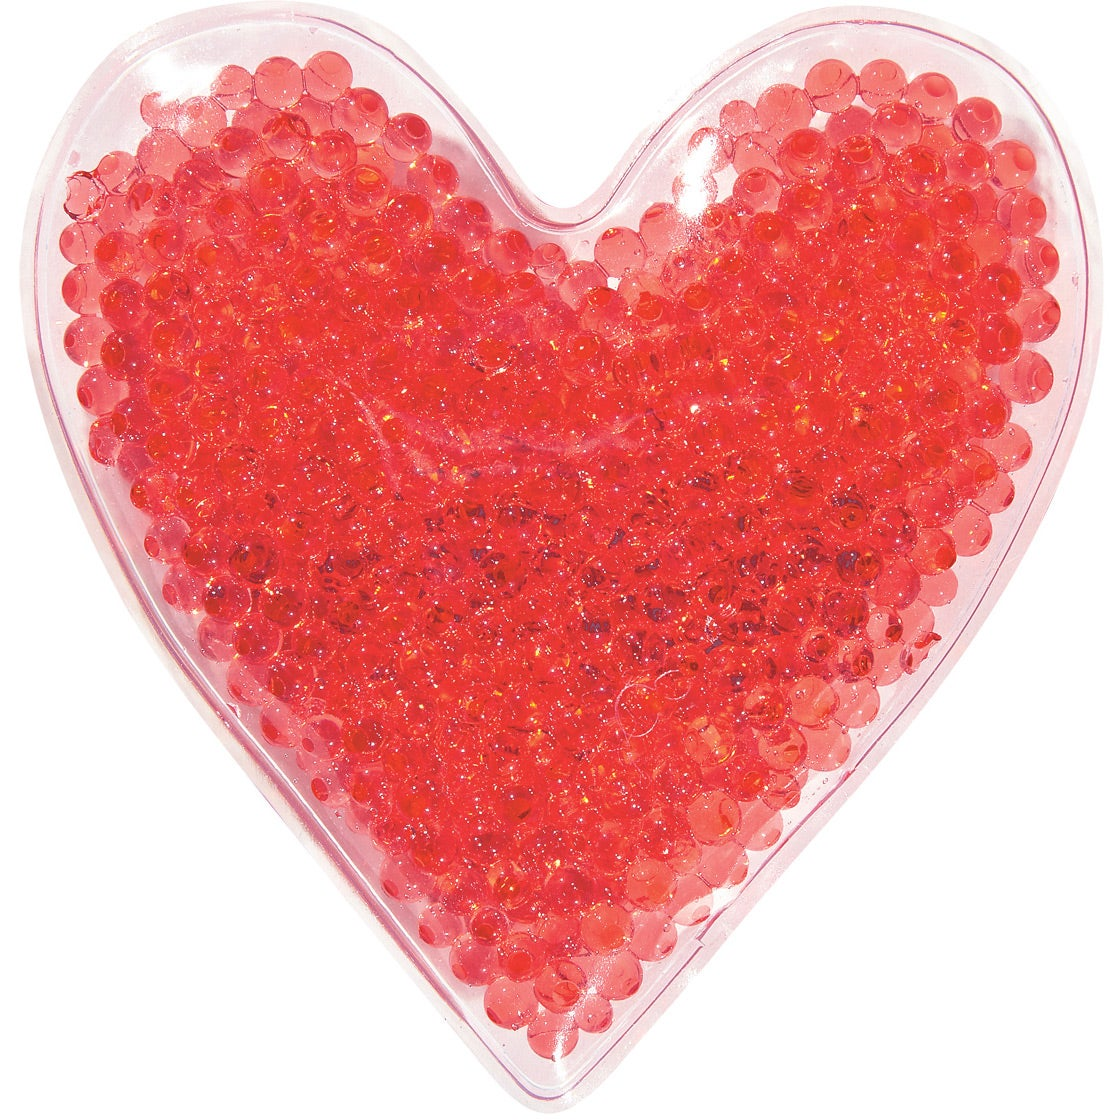 Click here to order heart shape gel beads hot cold packs printed with your logo for 94¢ ea